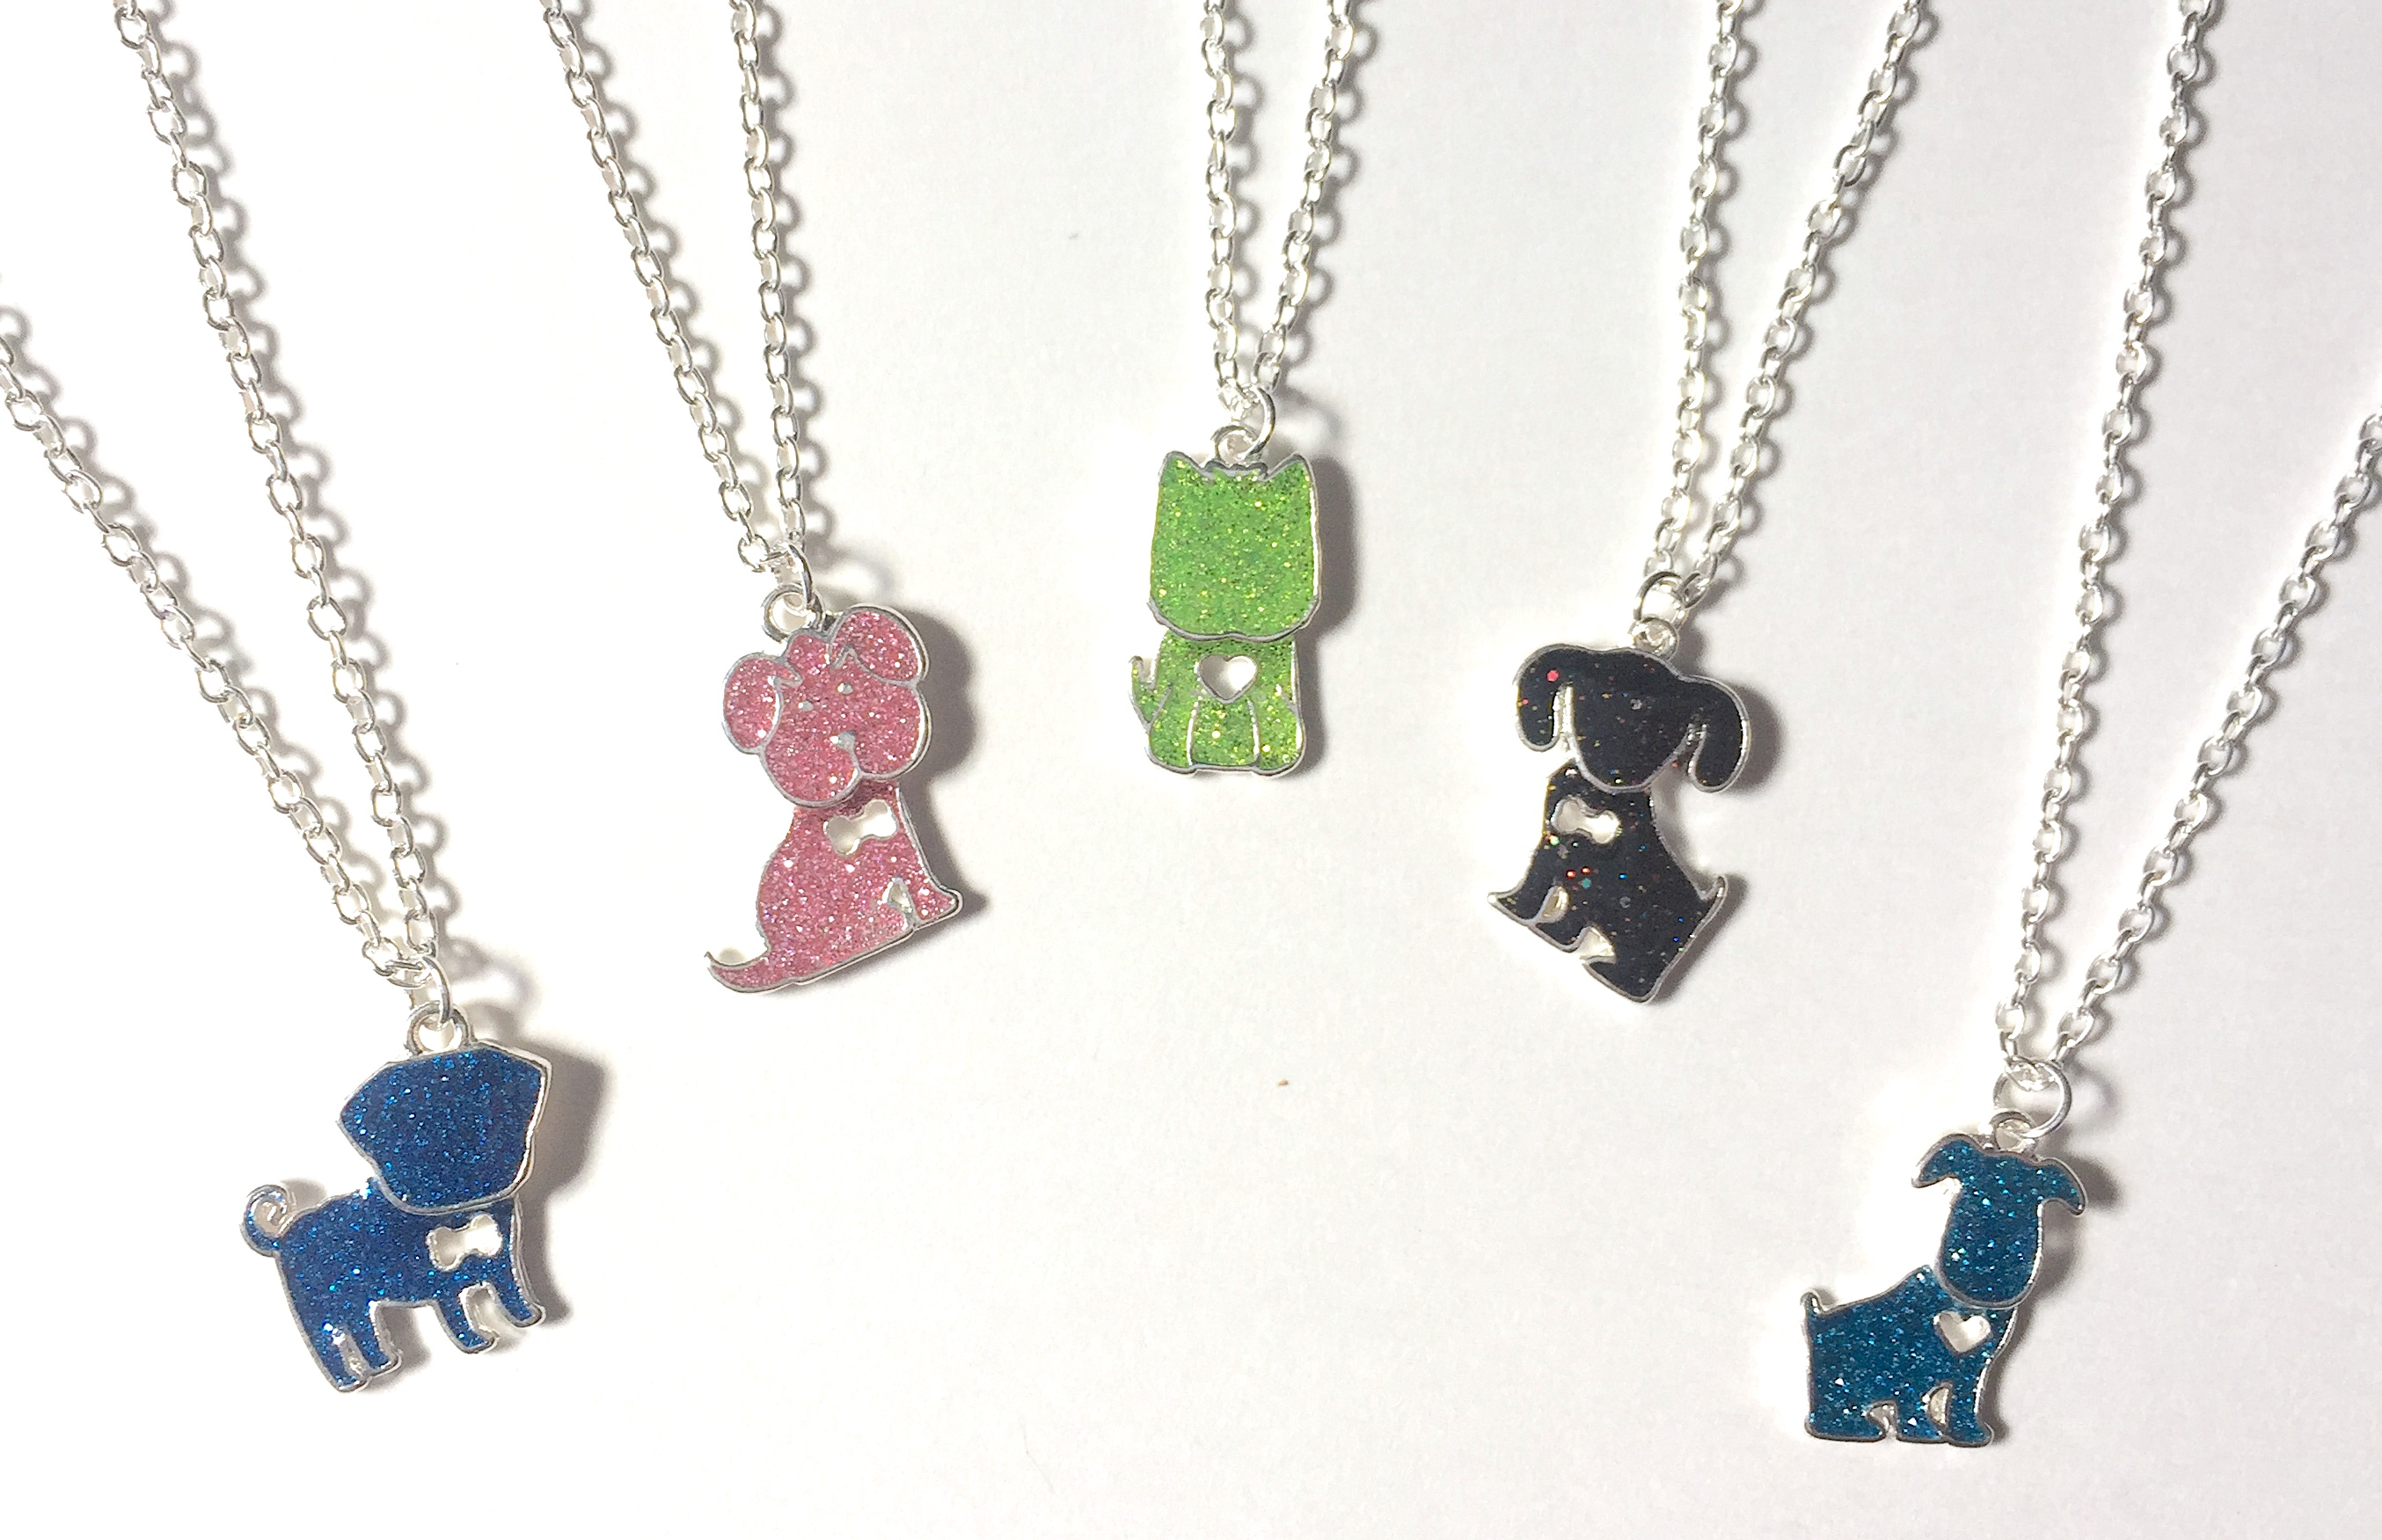 Glitter Dog Necklaces